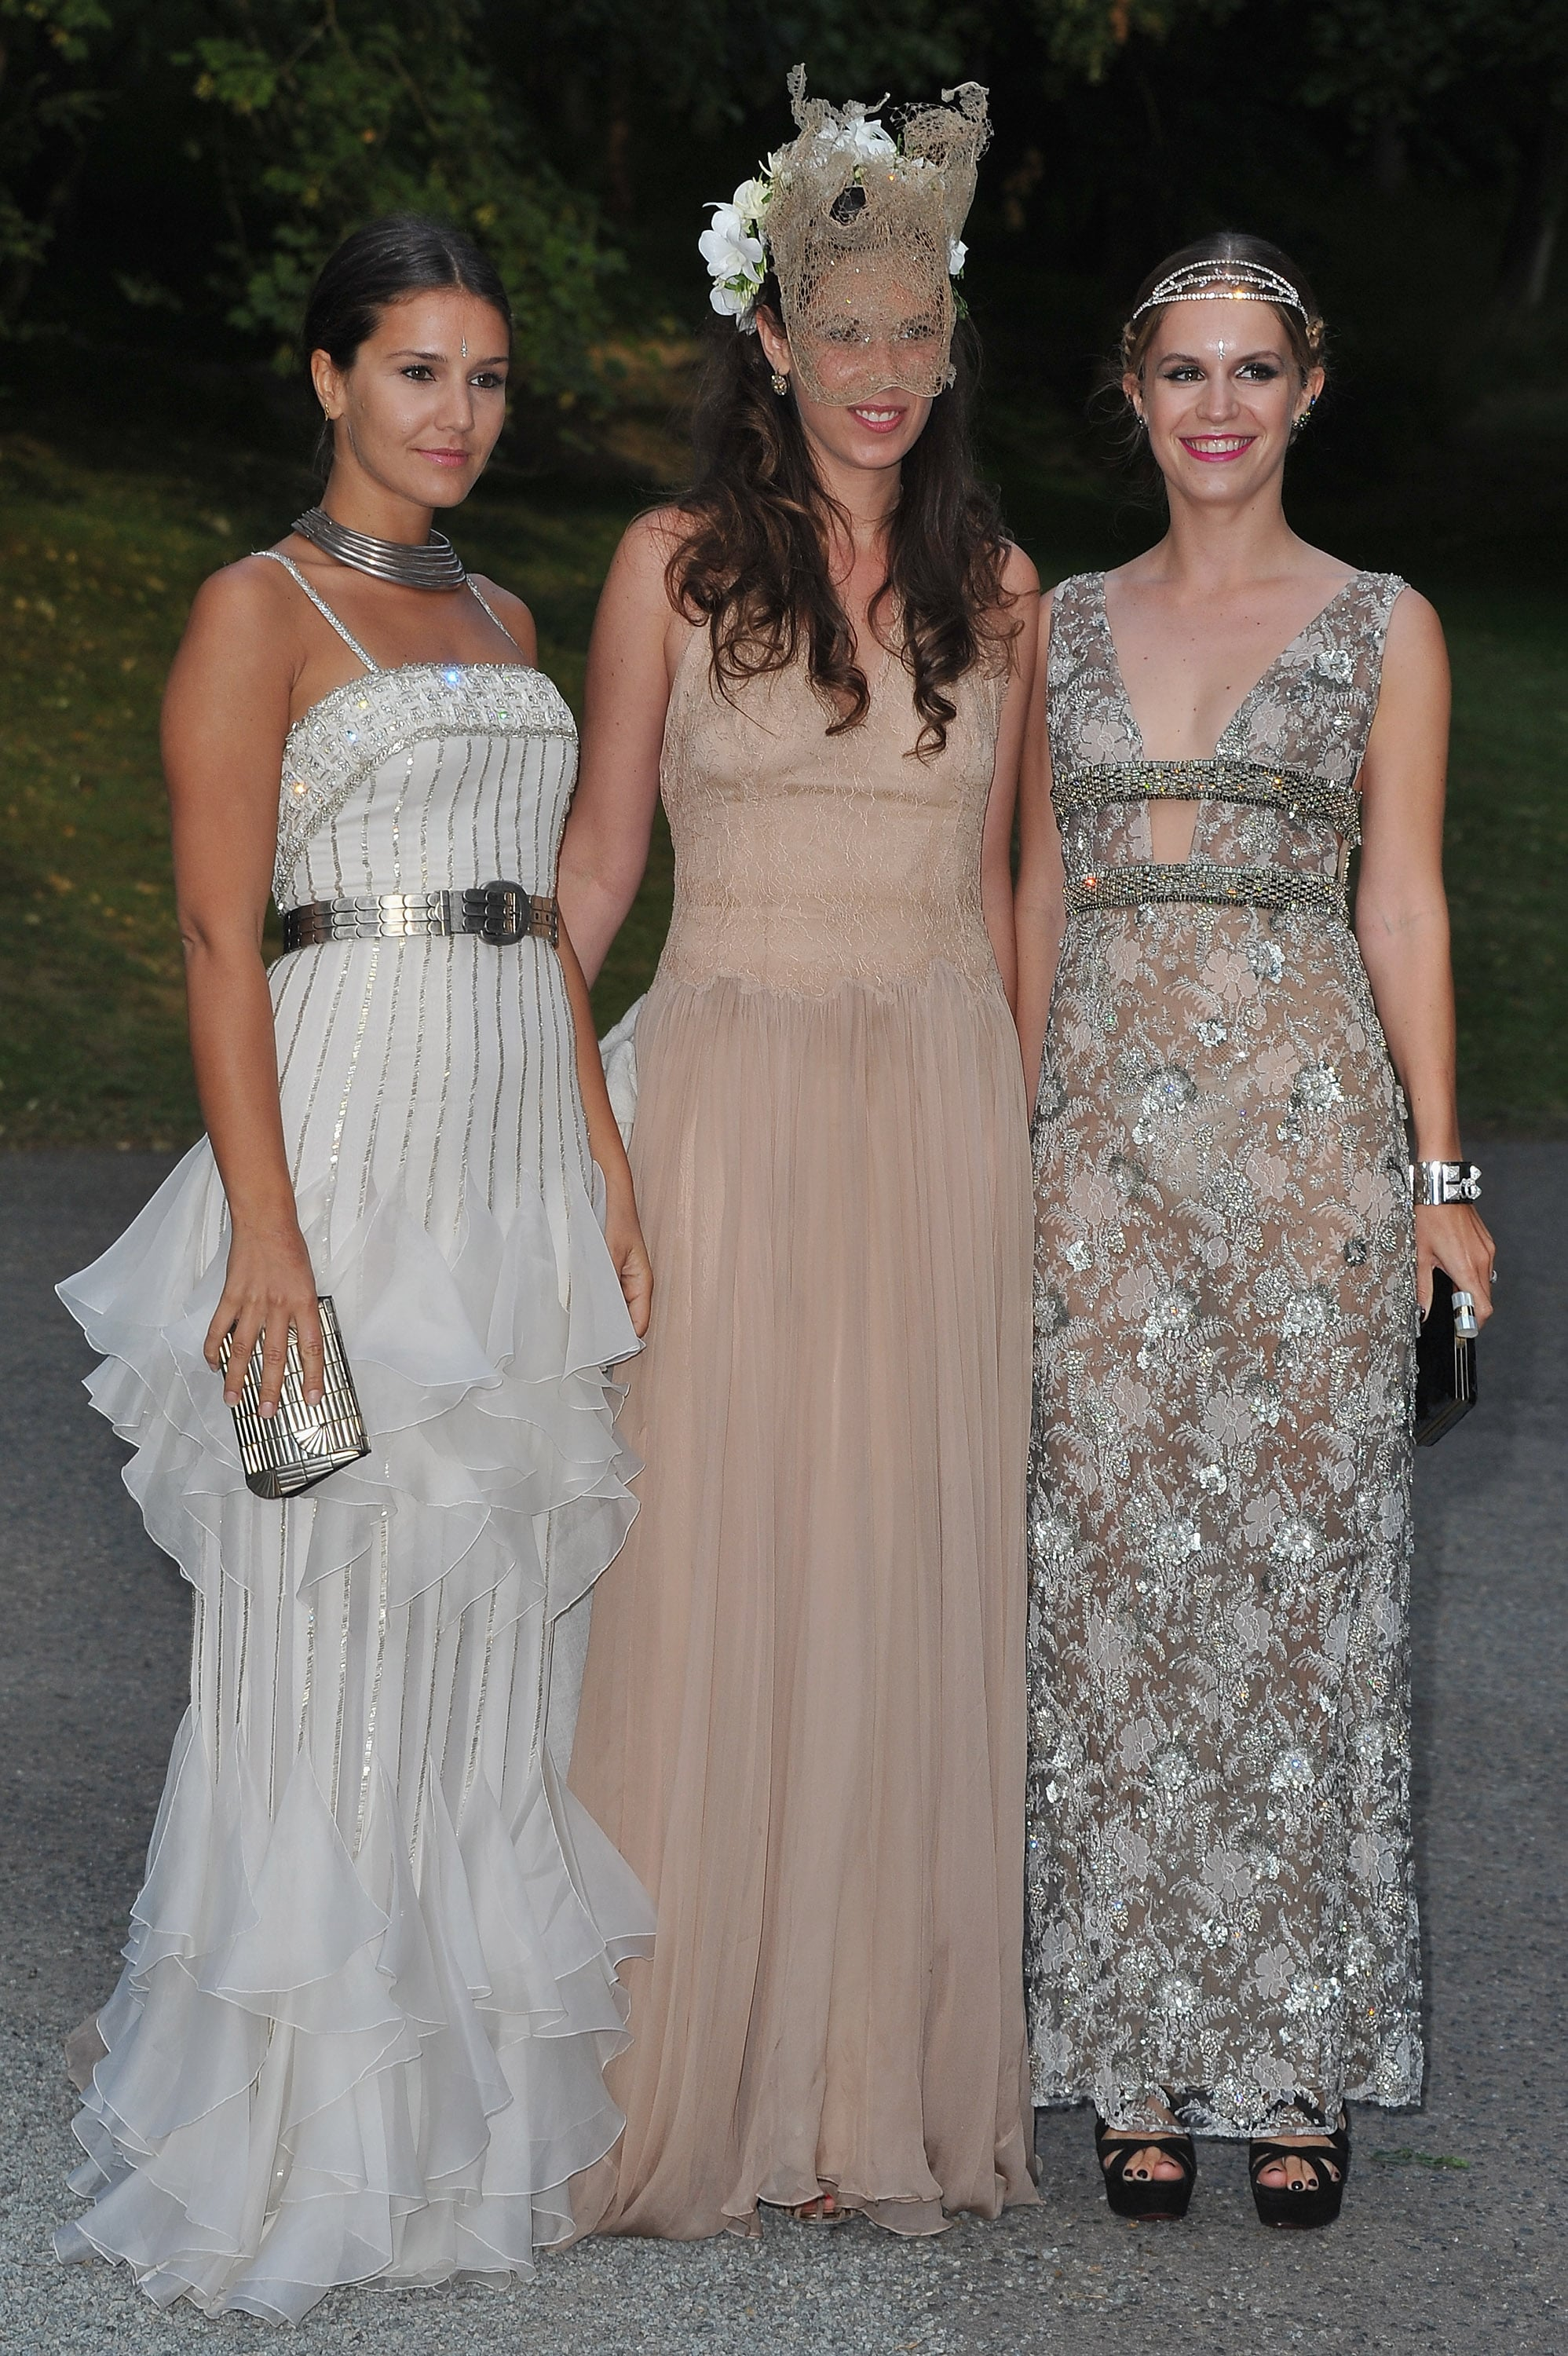 Margherita Missoni, Tatiana Santo Domingo and Eugenie Niarchos frock up for the grand event.